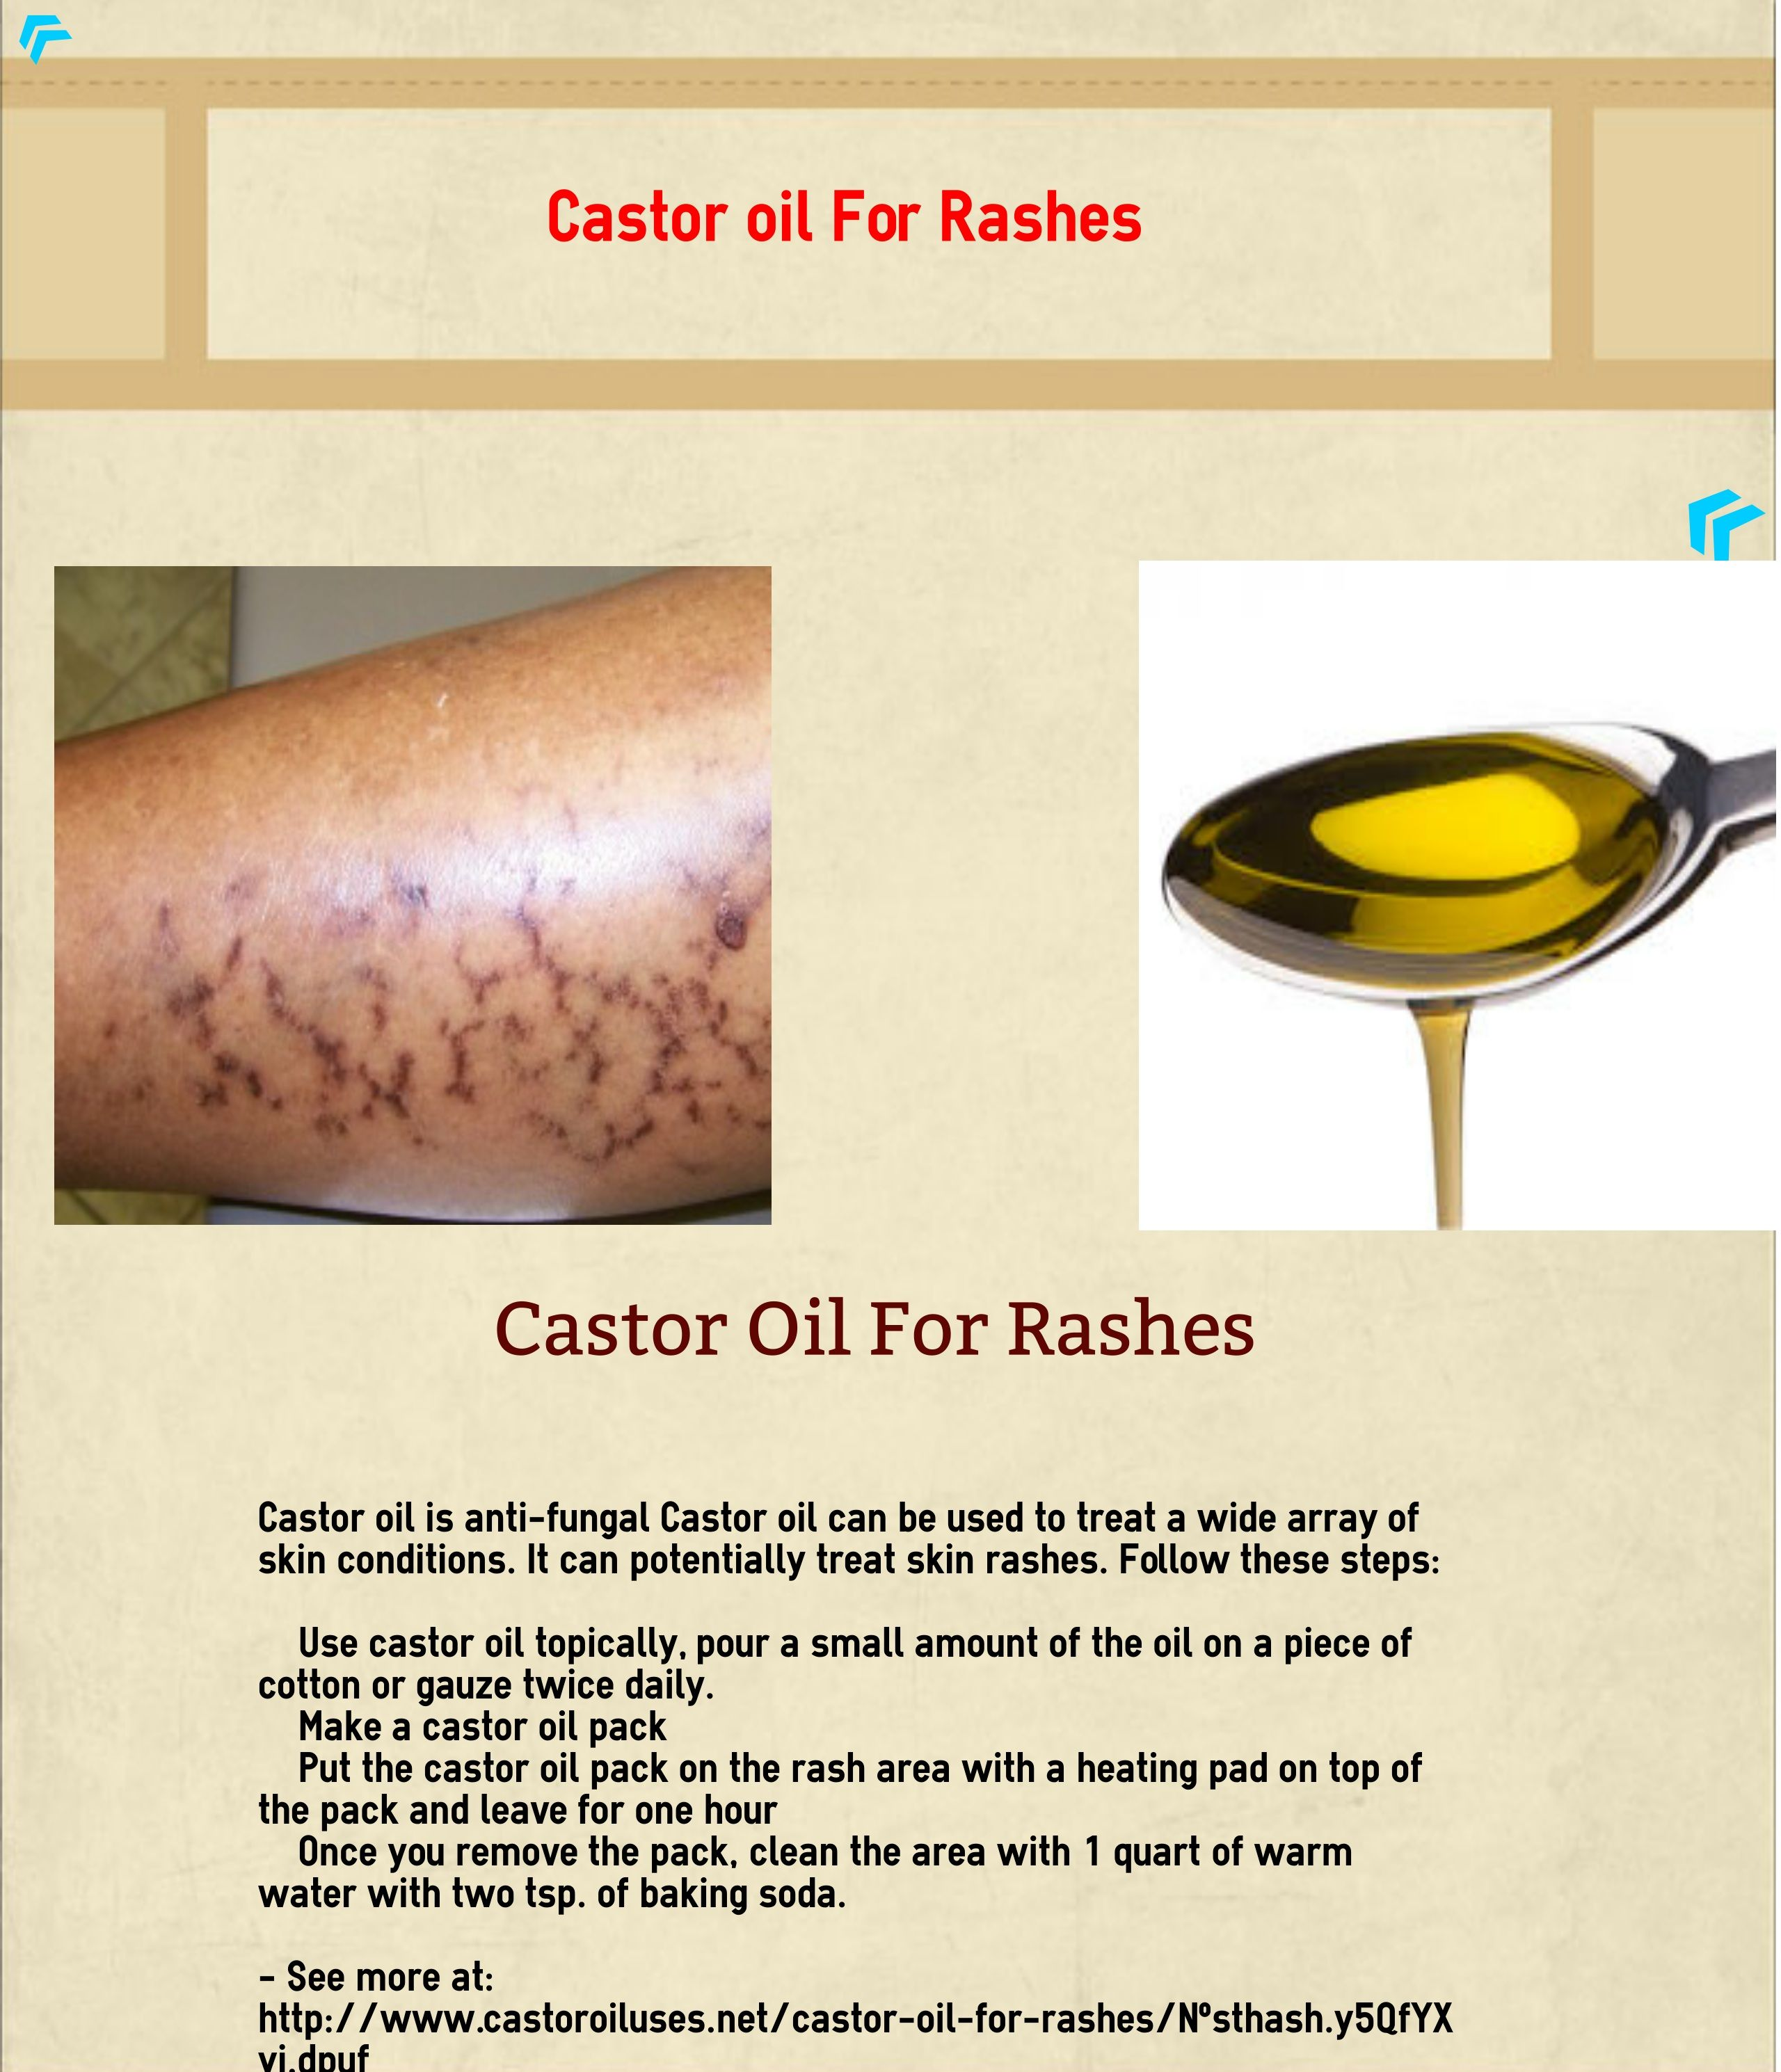 medium resolution of castor oil for rashes learn how to treat rashes with castor oi